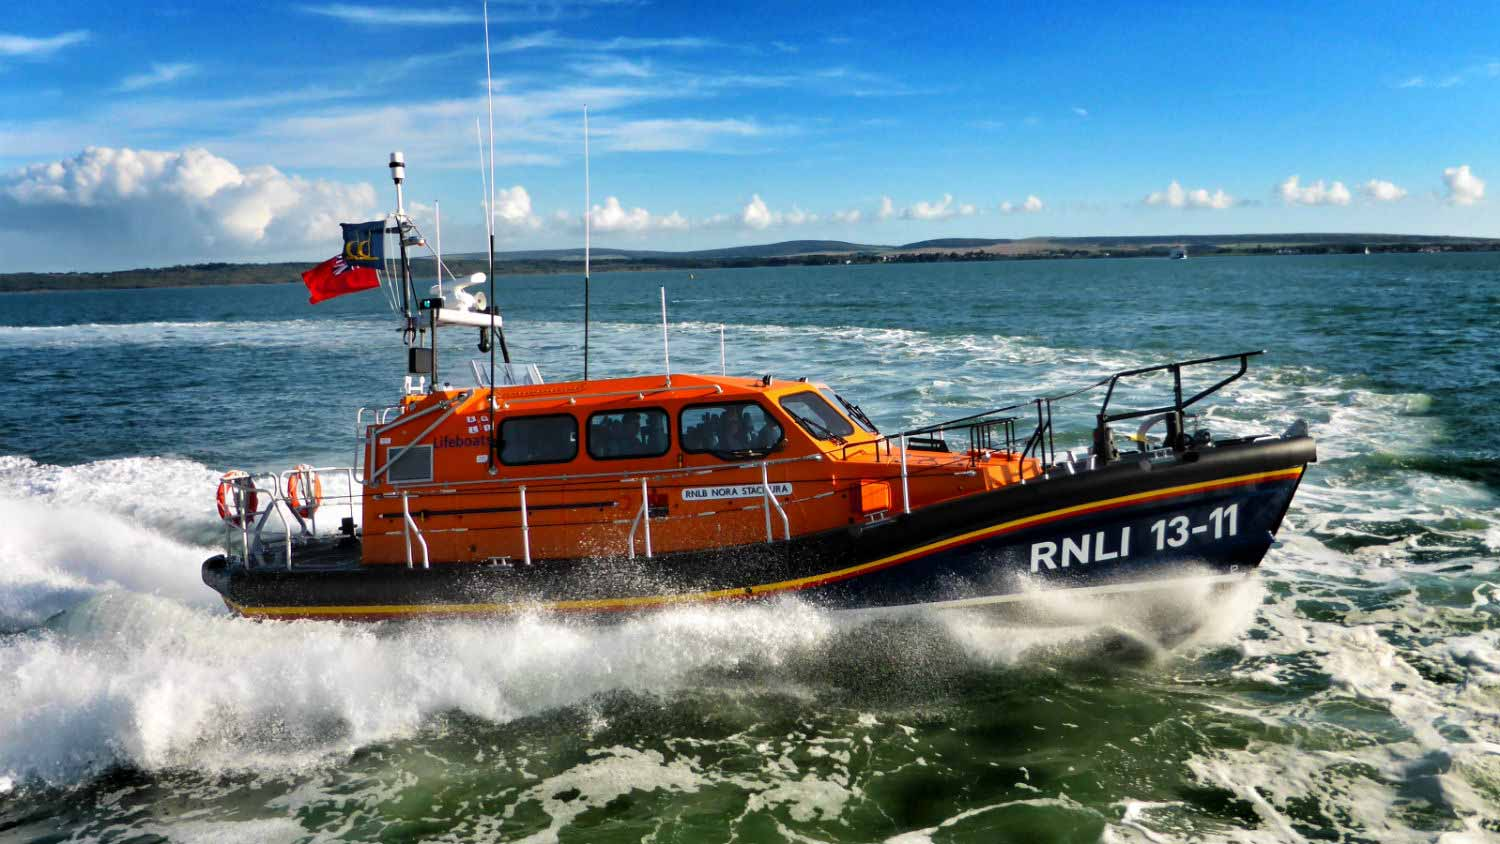 St Ives' Shannon class lifeboat Nora Stachura during trials.